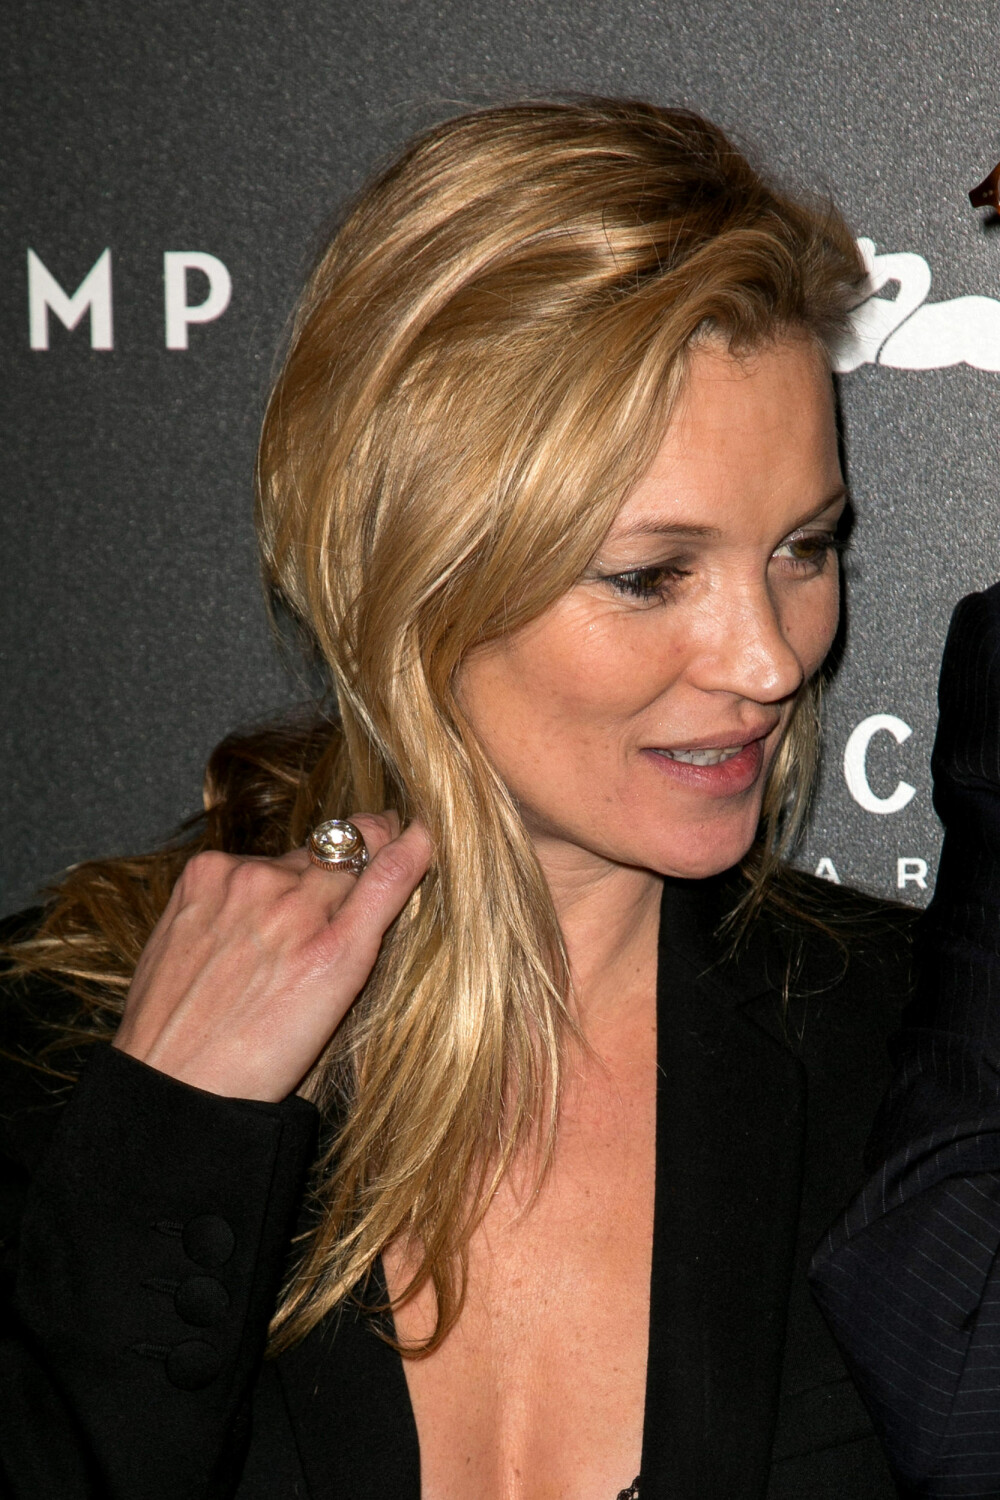 KONTRAST: Kate Moss er kjent for sin avslappede stil. Effortless hair kan være en fin kontrast til en ellers pyntet look. Foto: Getty Images